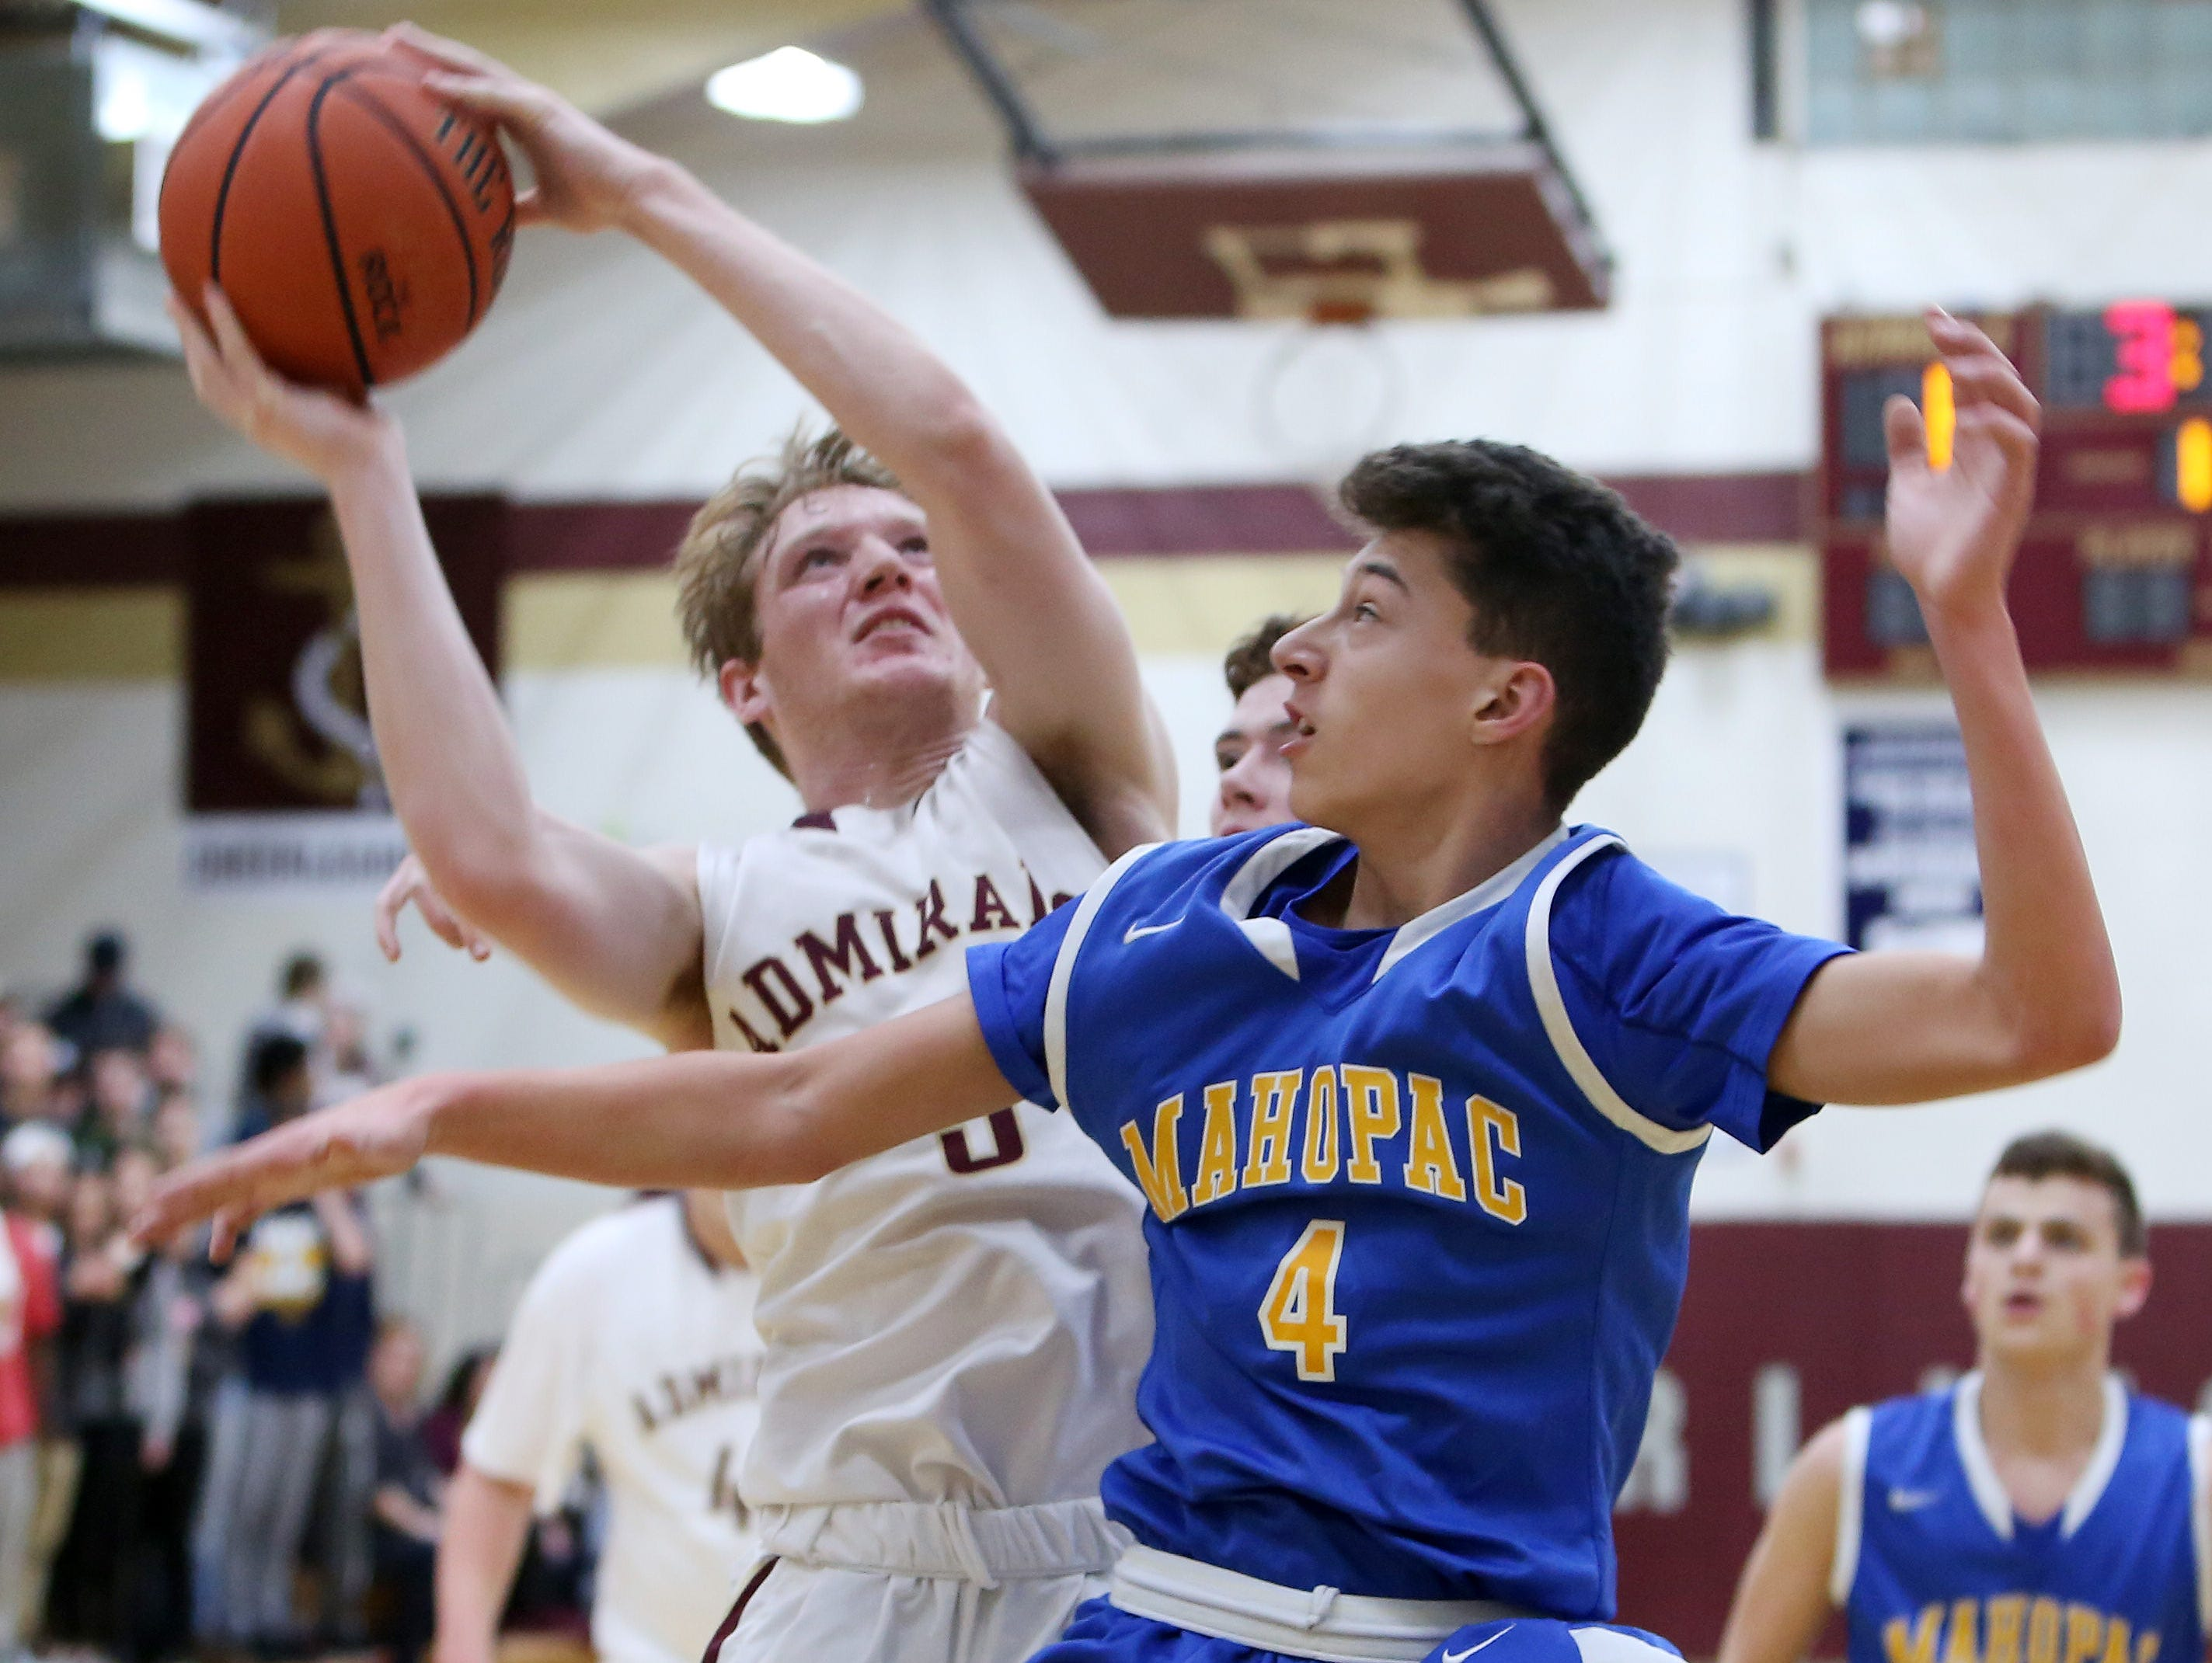 Arlington's John Smith (5) goes up for a shot in front of Mahopac's Zack Puckhaber (4) during a boys basketball game at Arlington High School Jan. 12, 2017.